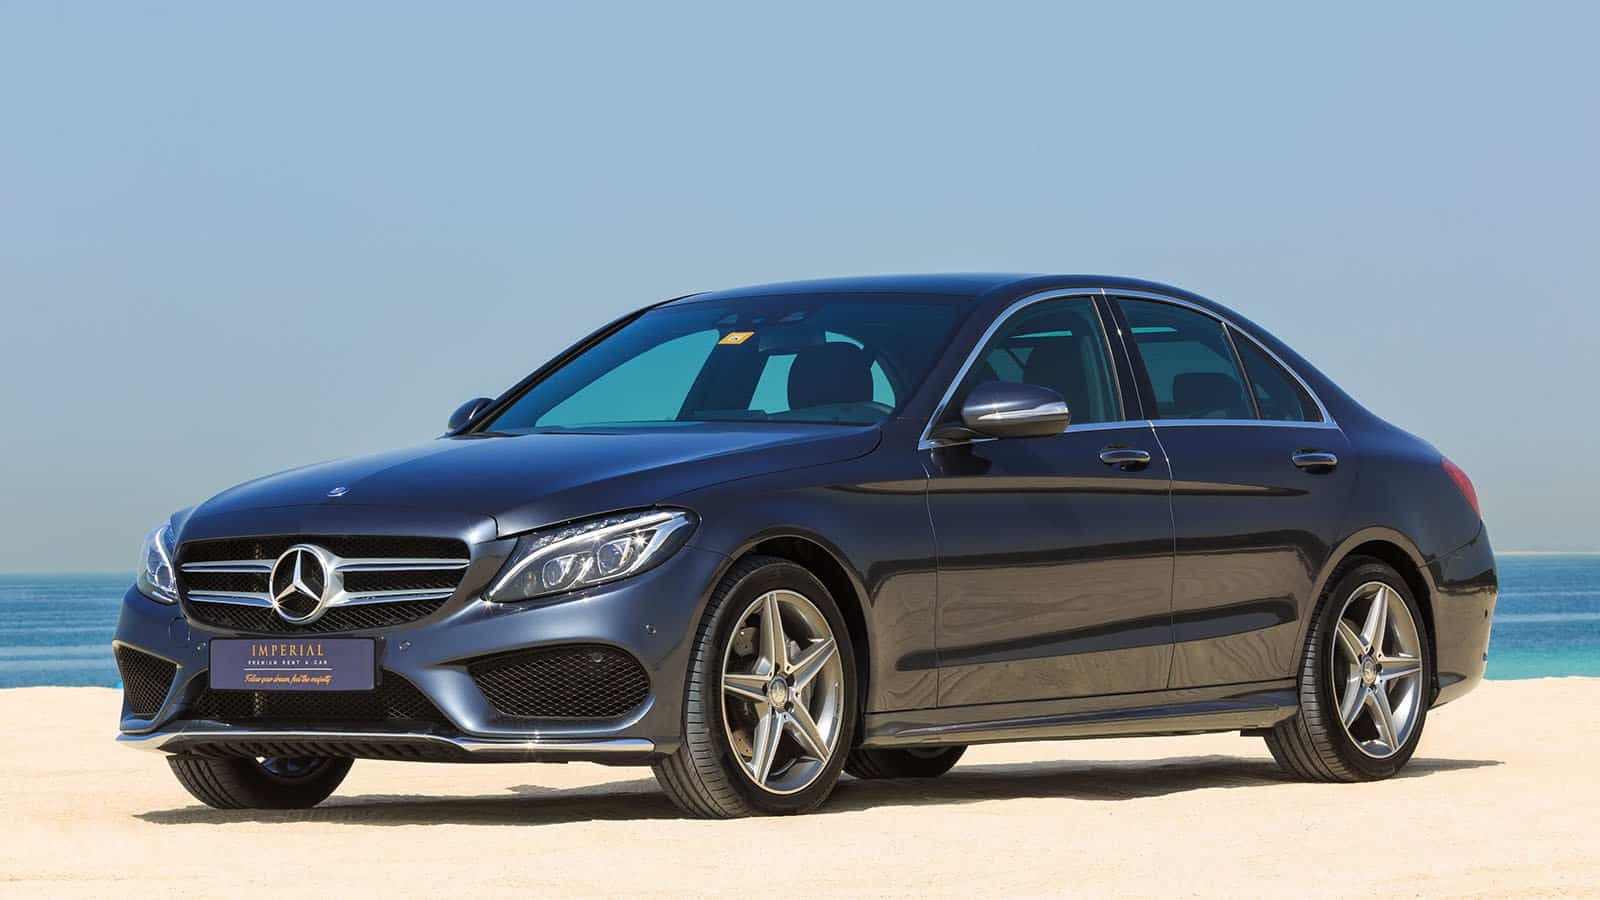 mercedes benz c200 rent dubai imperial premium rent a car. Black Bedroom Furniture Sets. Home Design Ideas